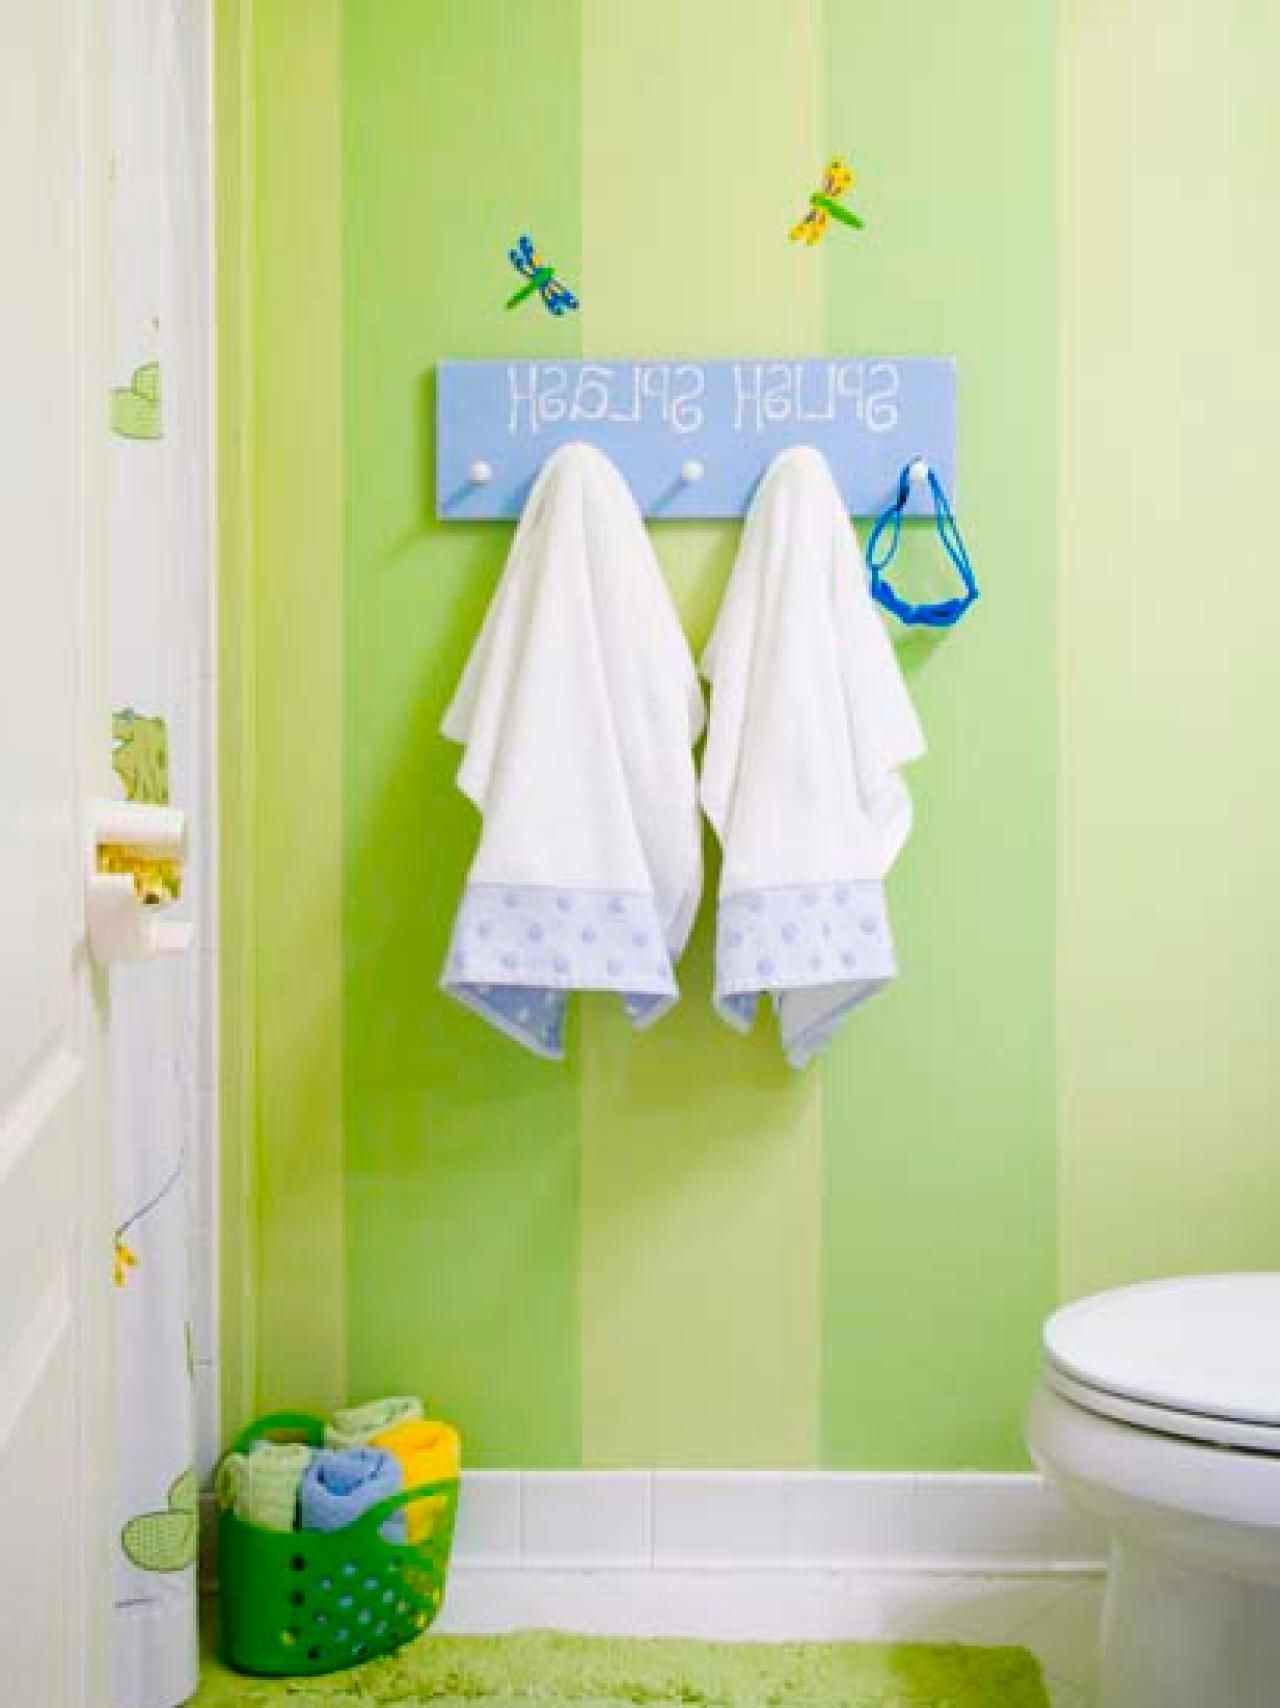 Decorating Kids Bathroom Can Be Very Fun. Every Corner Of 40+ Frog Bathroom Decorating Inspirations